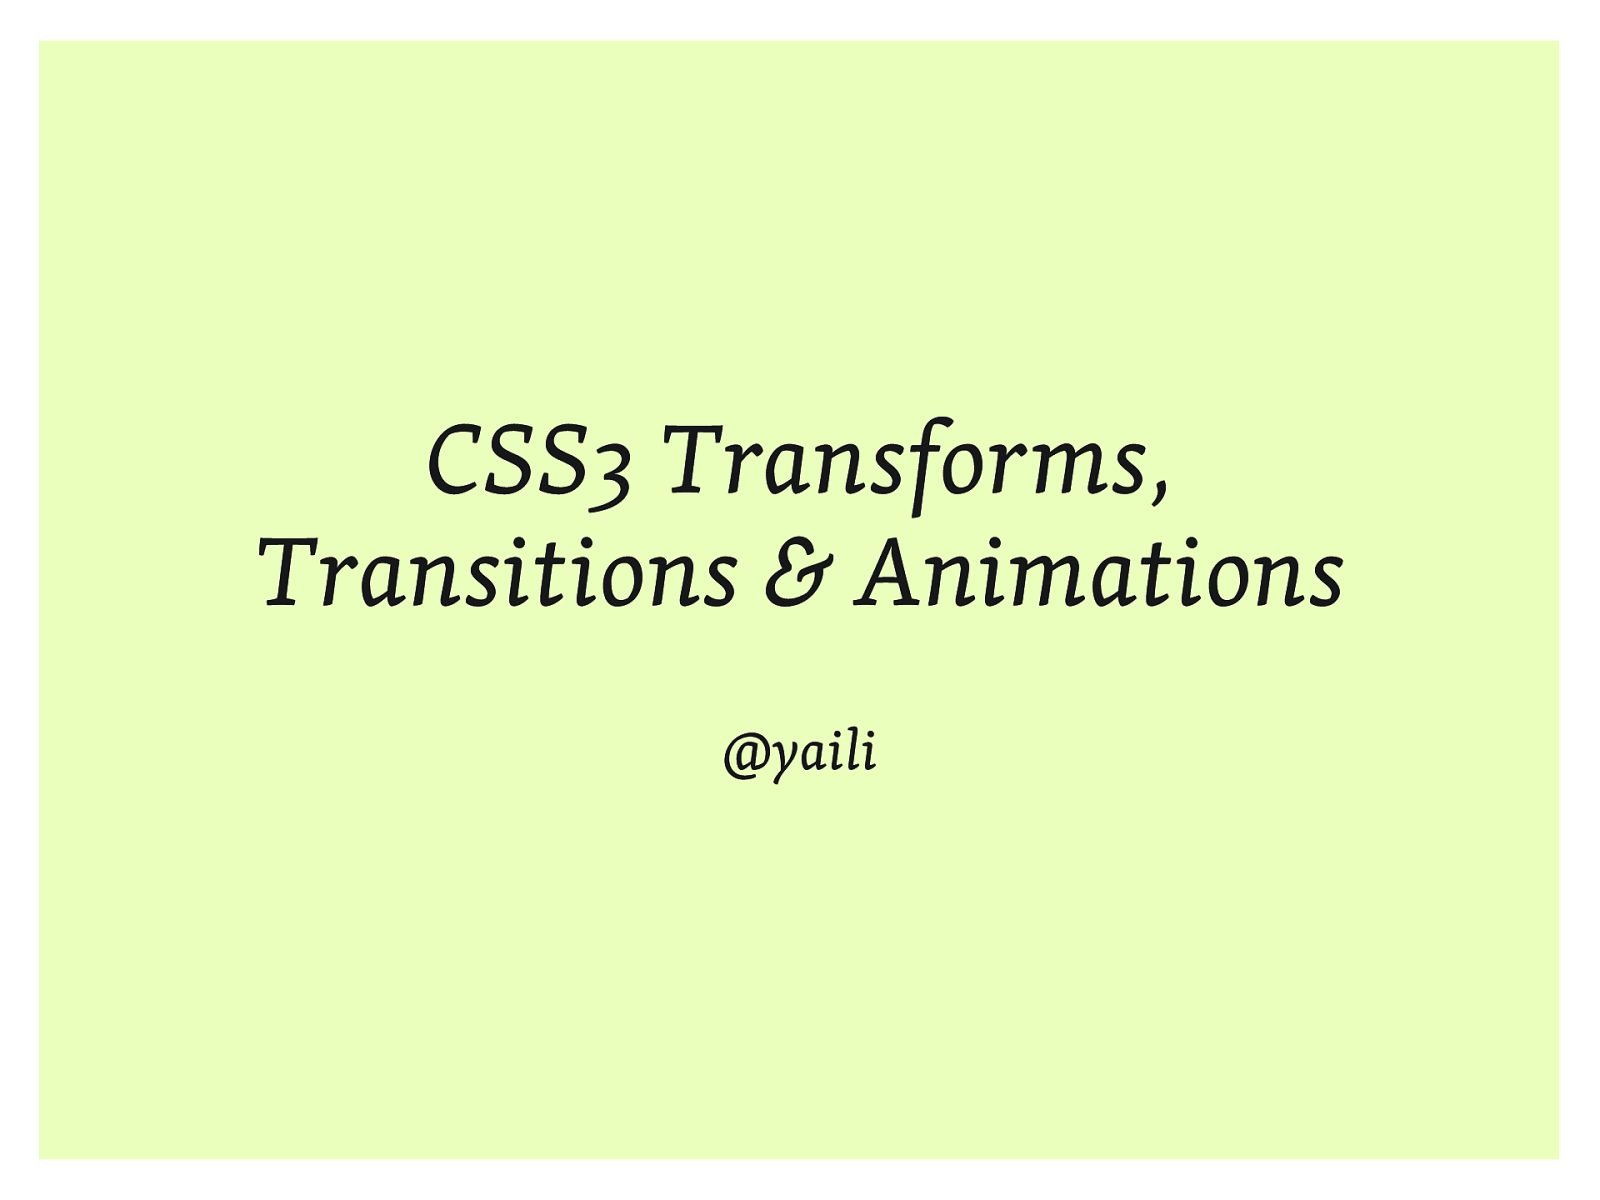 CSS3 Transforms, Transitions & Animations